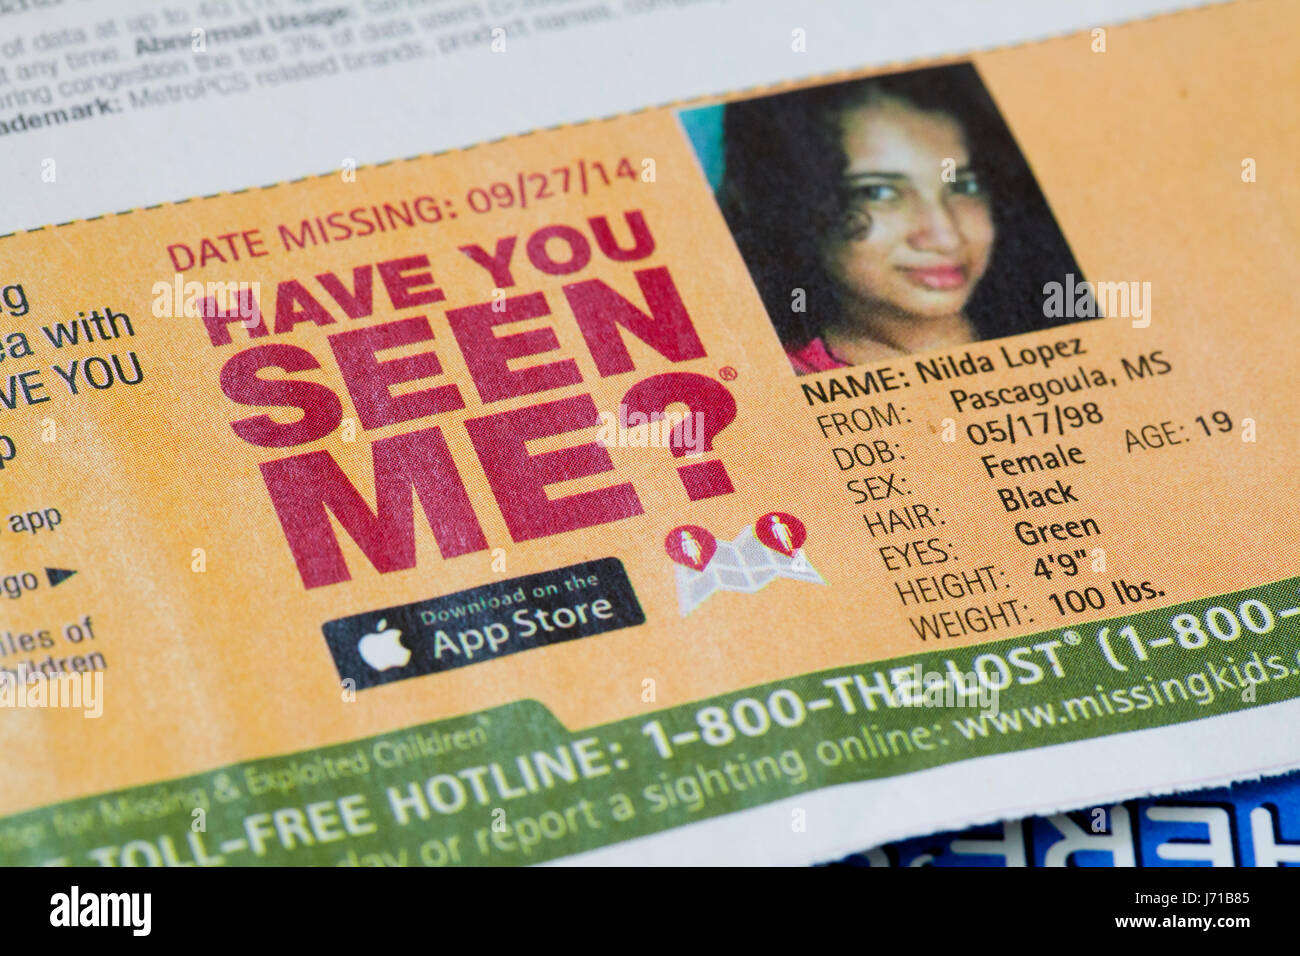 Have You Seen Me ad of missing girl (missing children, missing child, missing person, missing persons) - USA - Stock Image